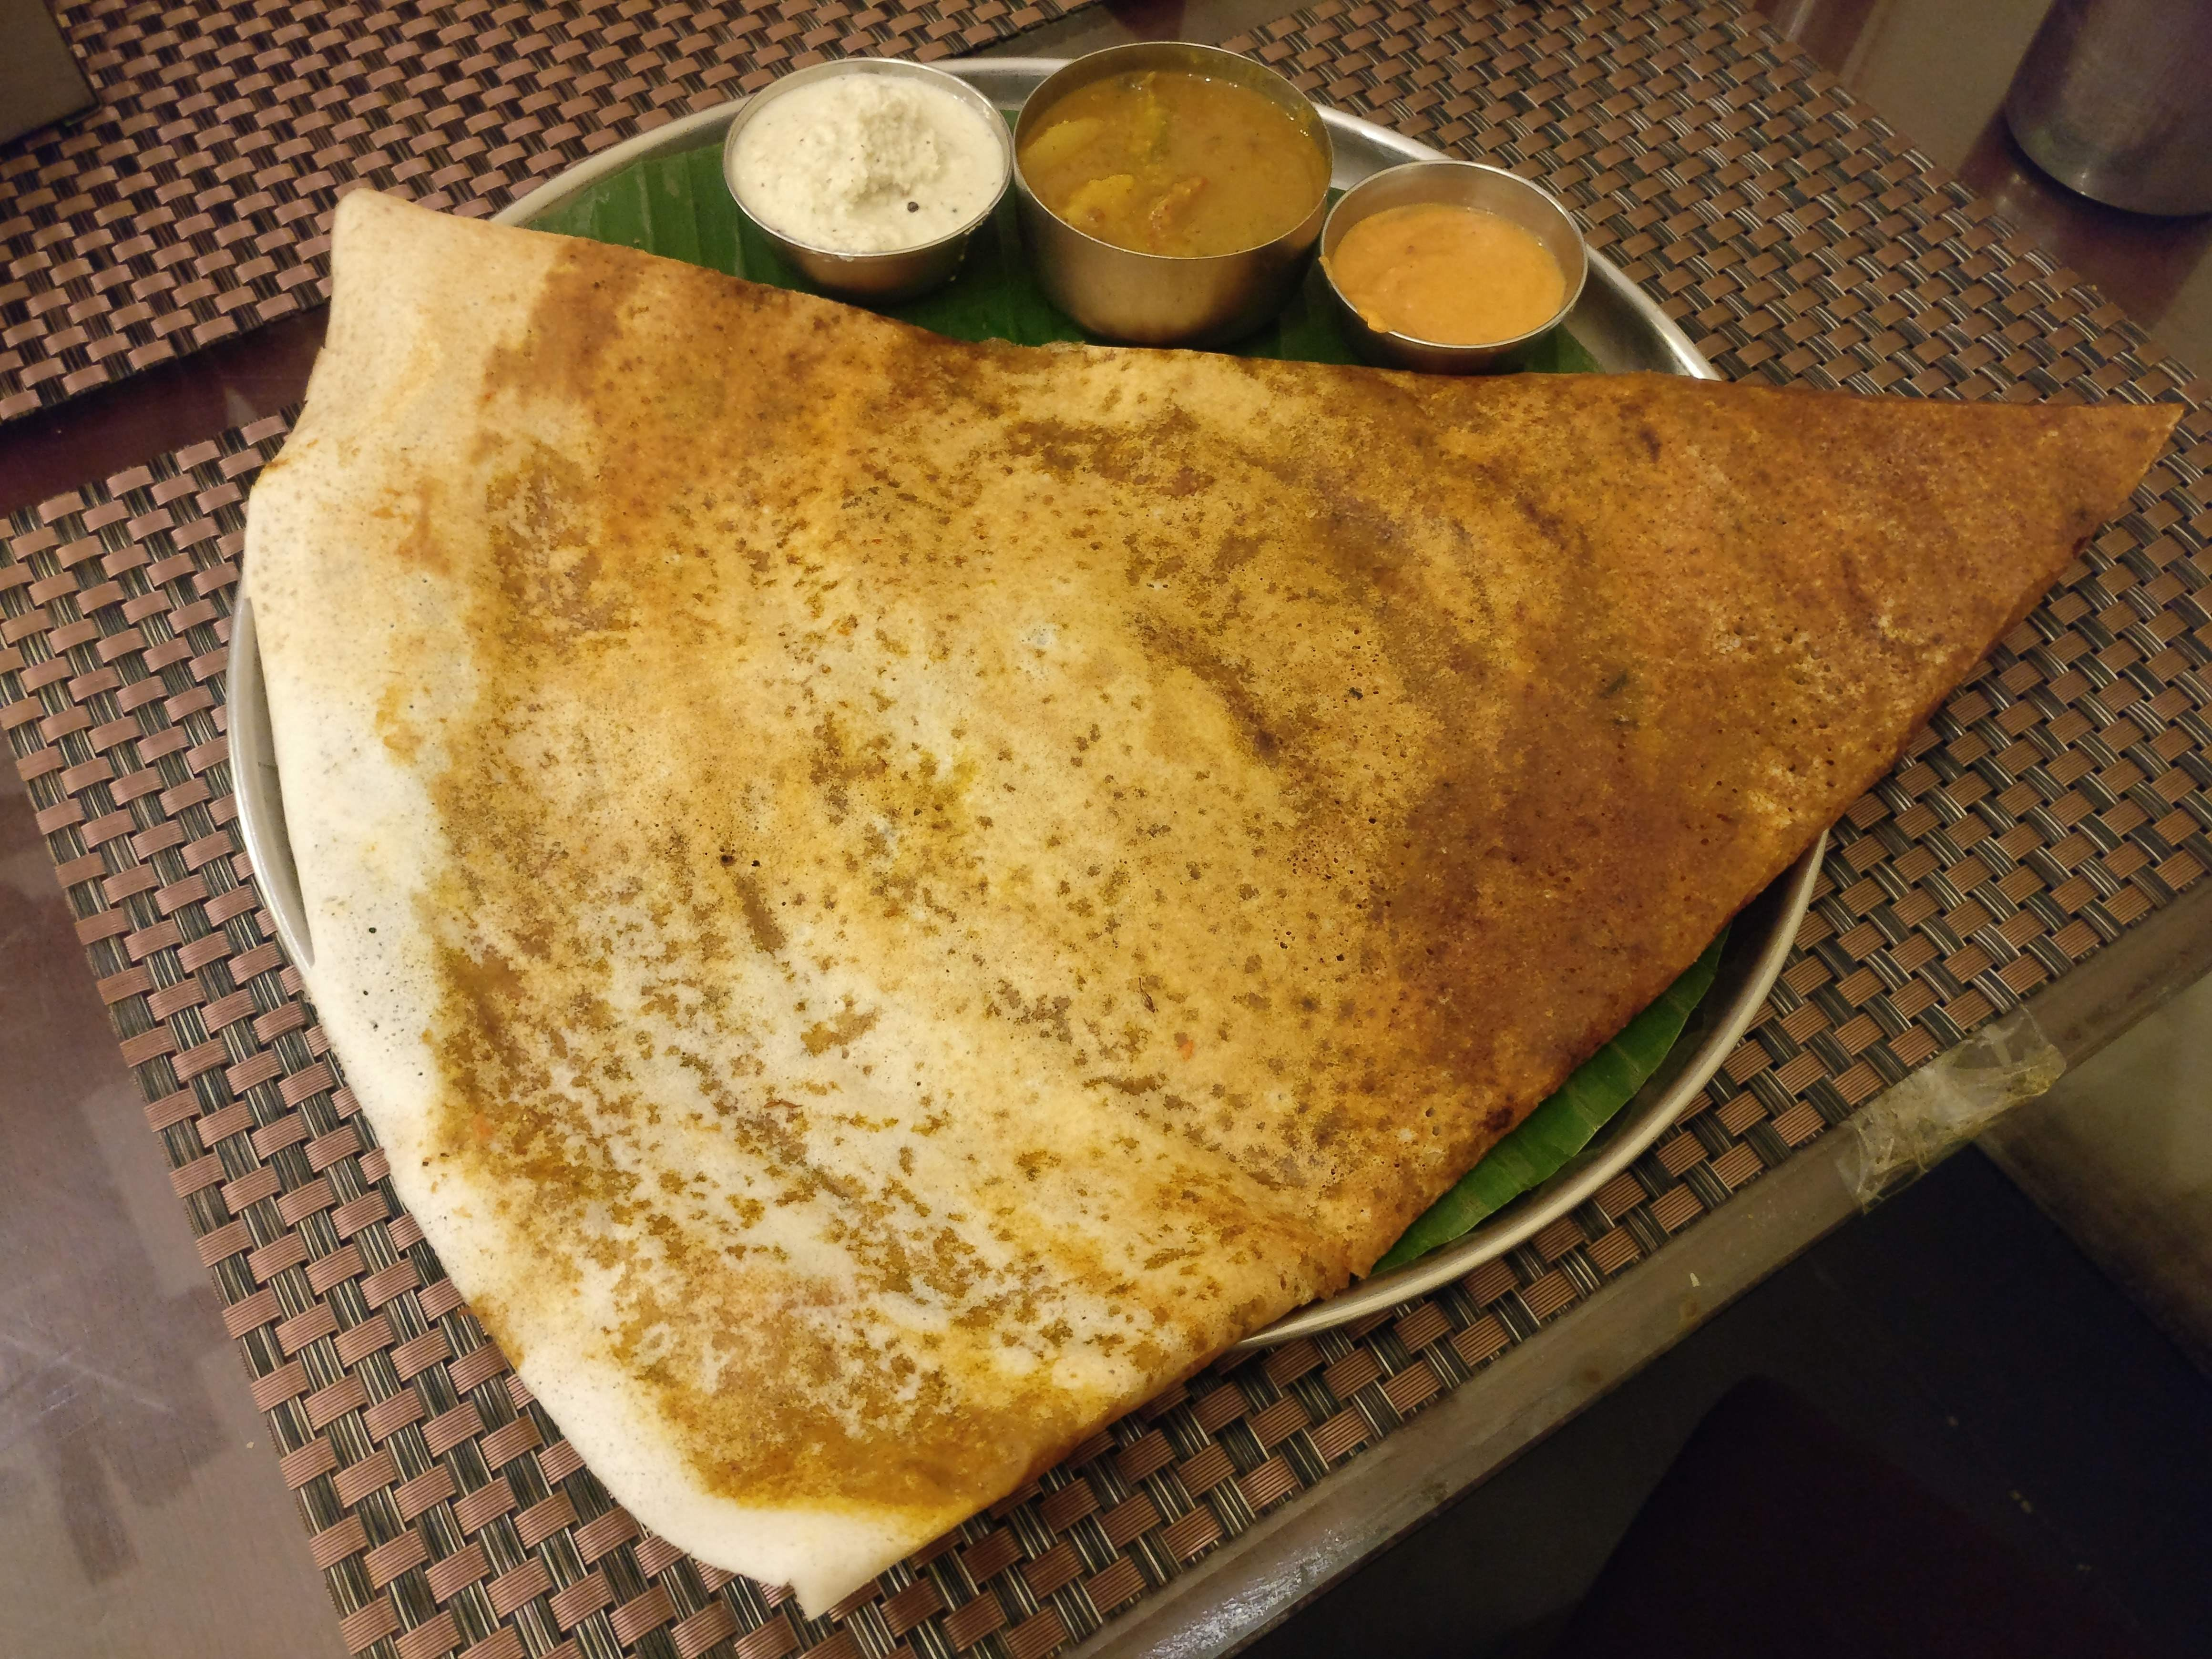 Dish,Food,Cuisine,Dosa,Ingredient,Crêpe,Breakfast,Indian cuisine,Produce,Meal